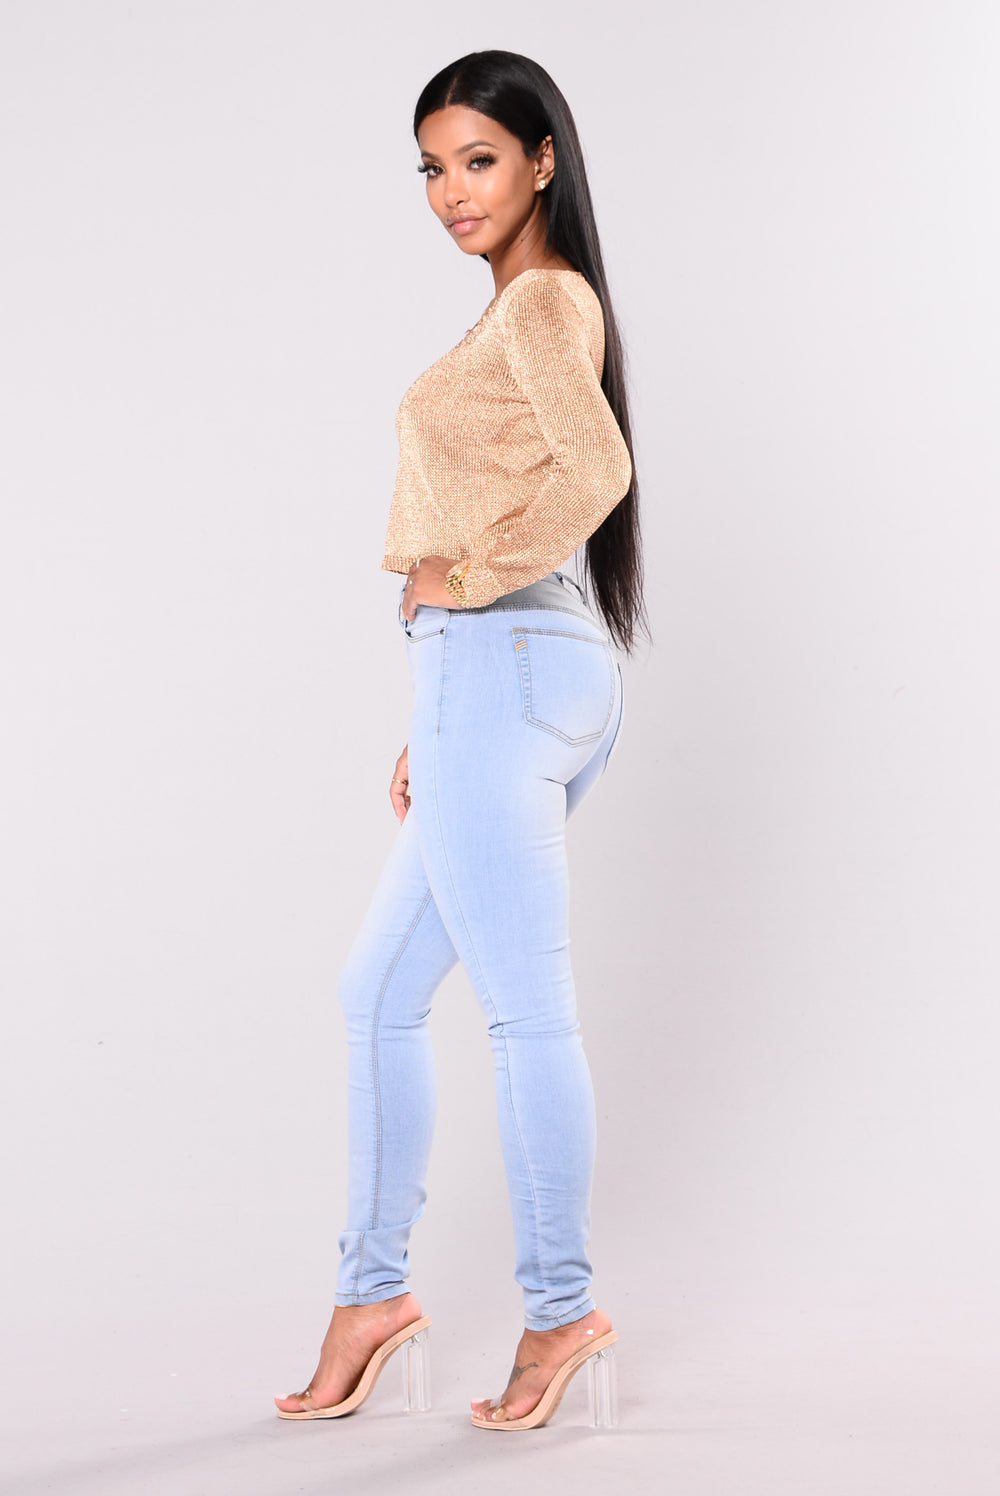 Caneli Jeans - Grey/Blue